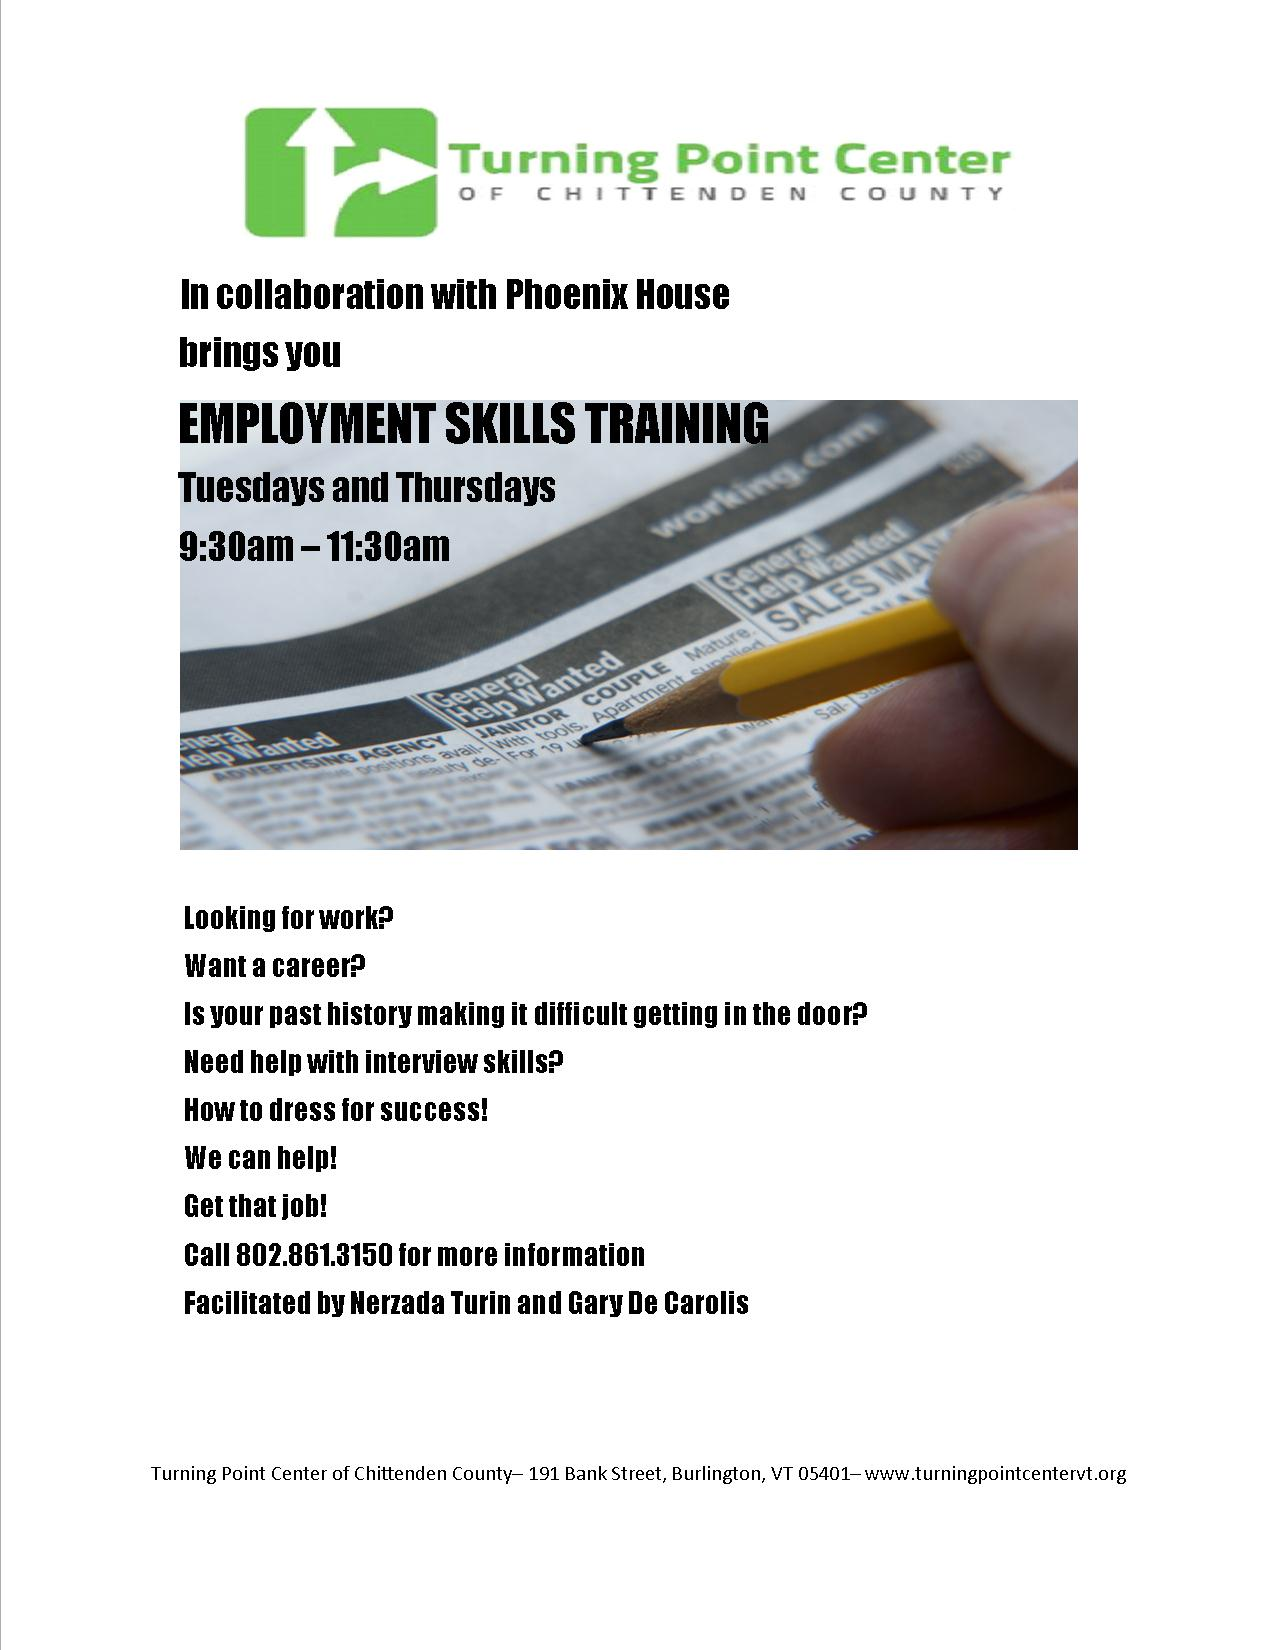 employment skills training available at the turning point center employment skills training available at the turning point center of vt